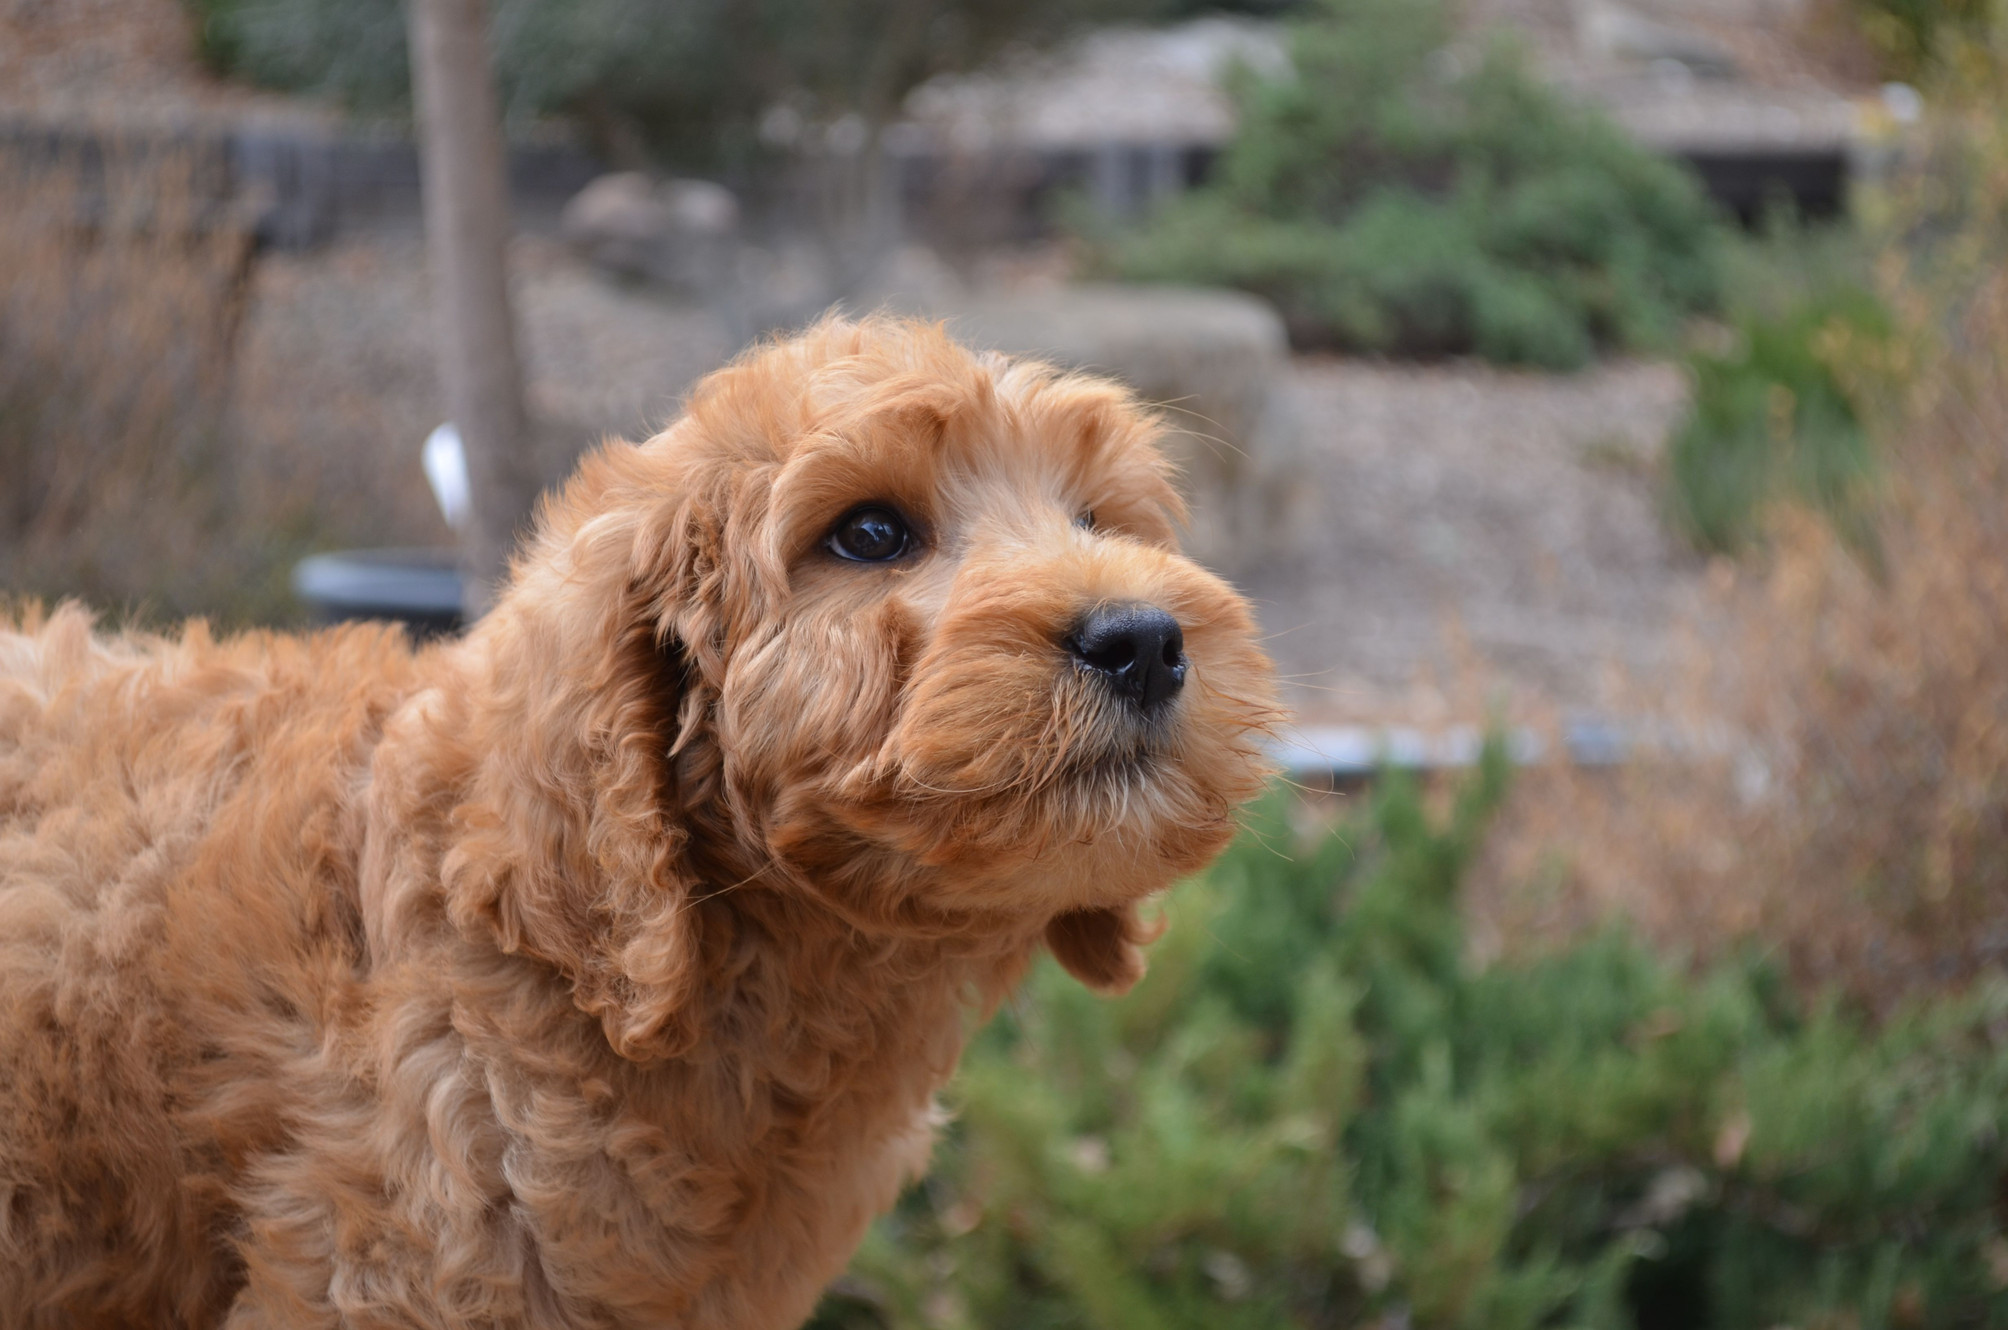 Lola's Labradoodles-Labradoodle Puppies for Sale in Florida